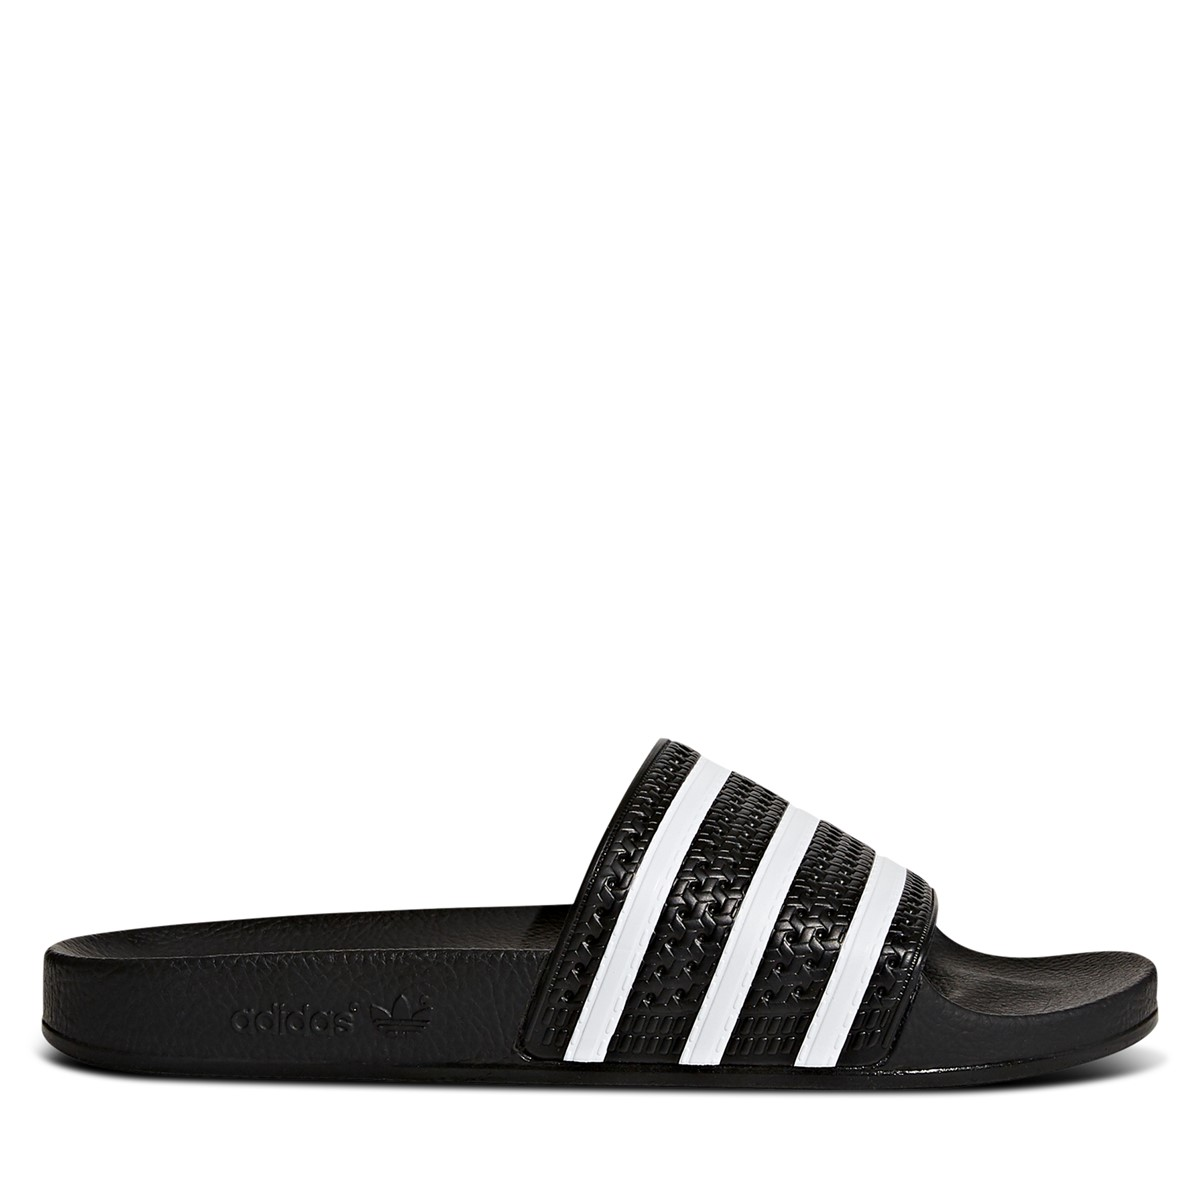 Adilette Black & White Slides